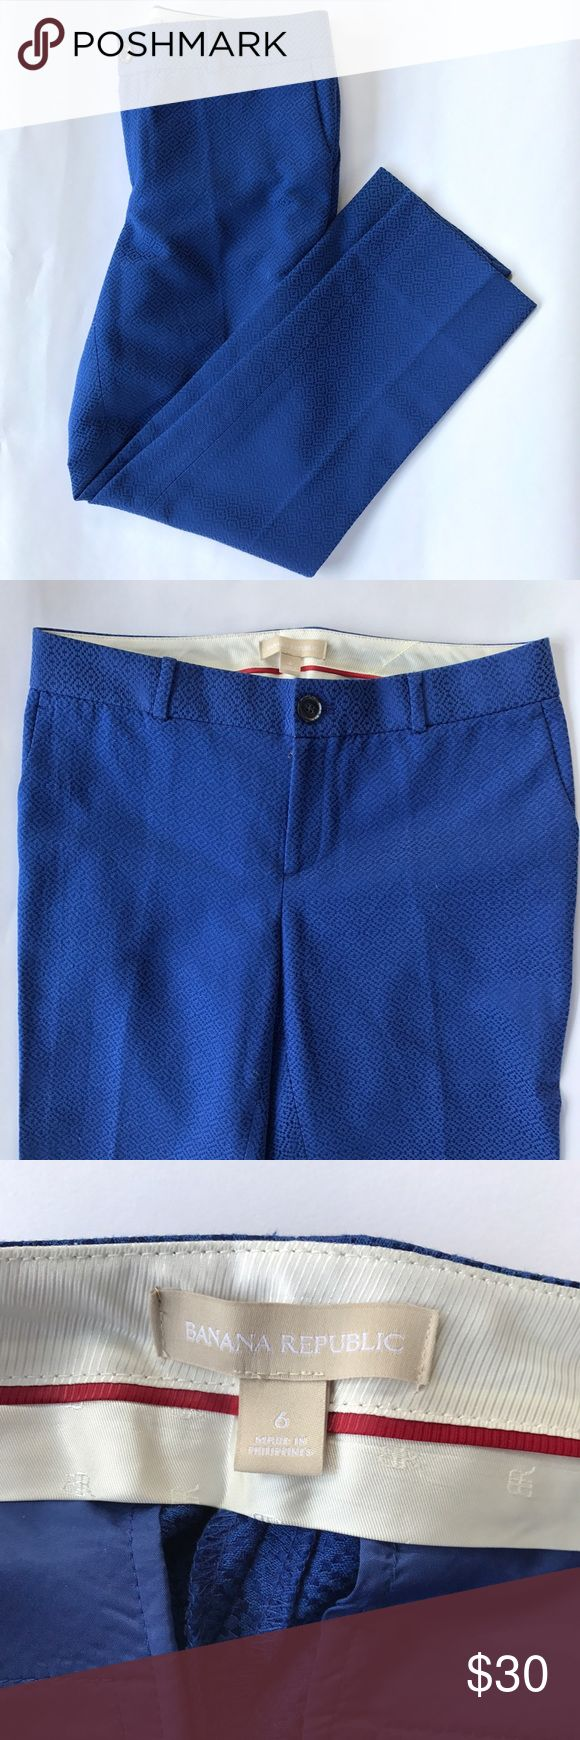 Banana Republic Trousers Gorgeous blue trousers form Banana Republic.  Ankle length.  Perfect for summer. Banana Republic Pants Ankle & Cropped